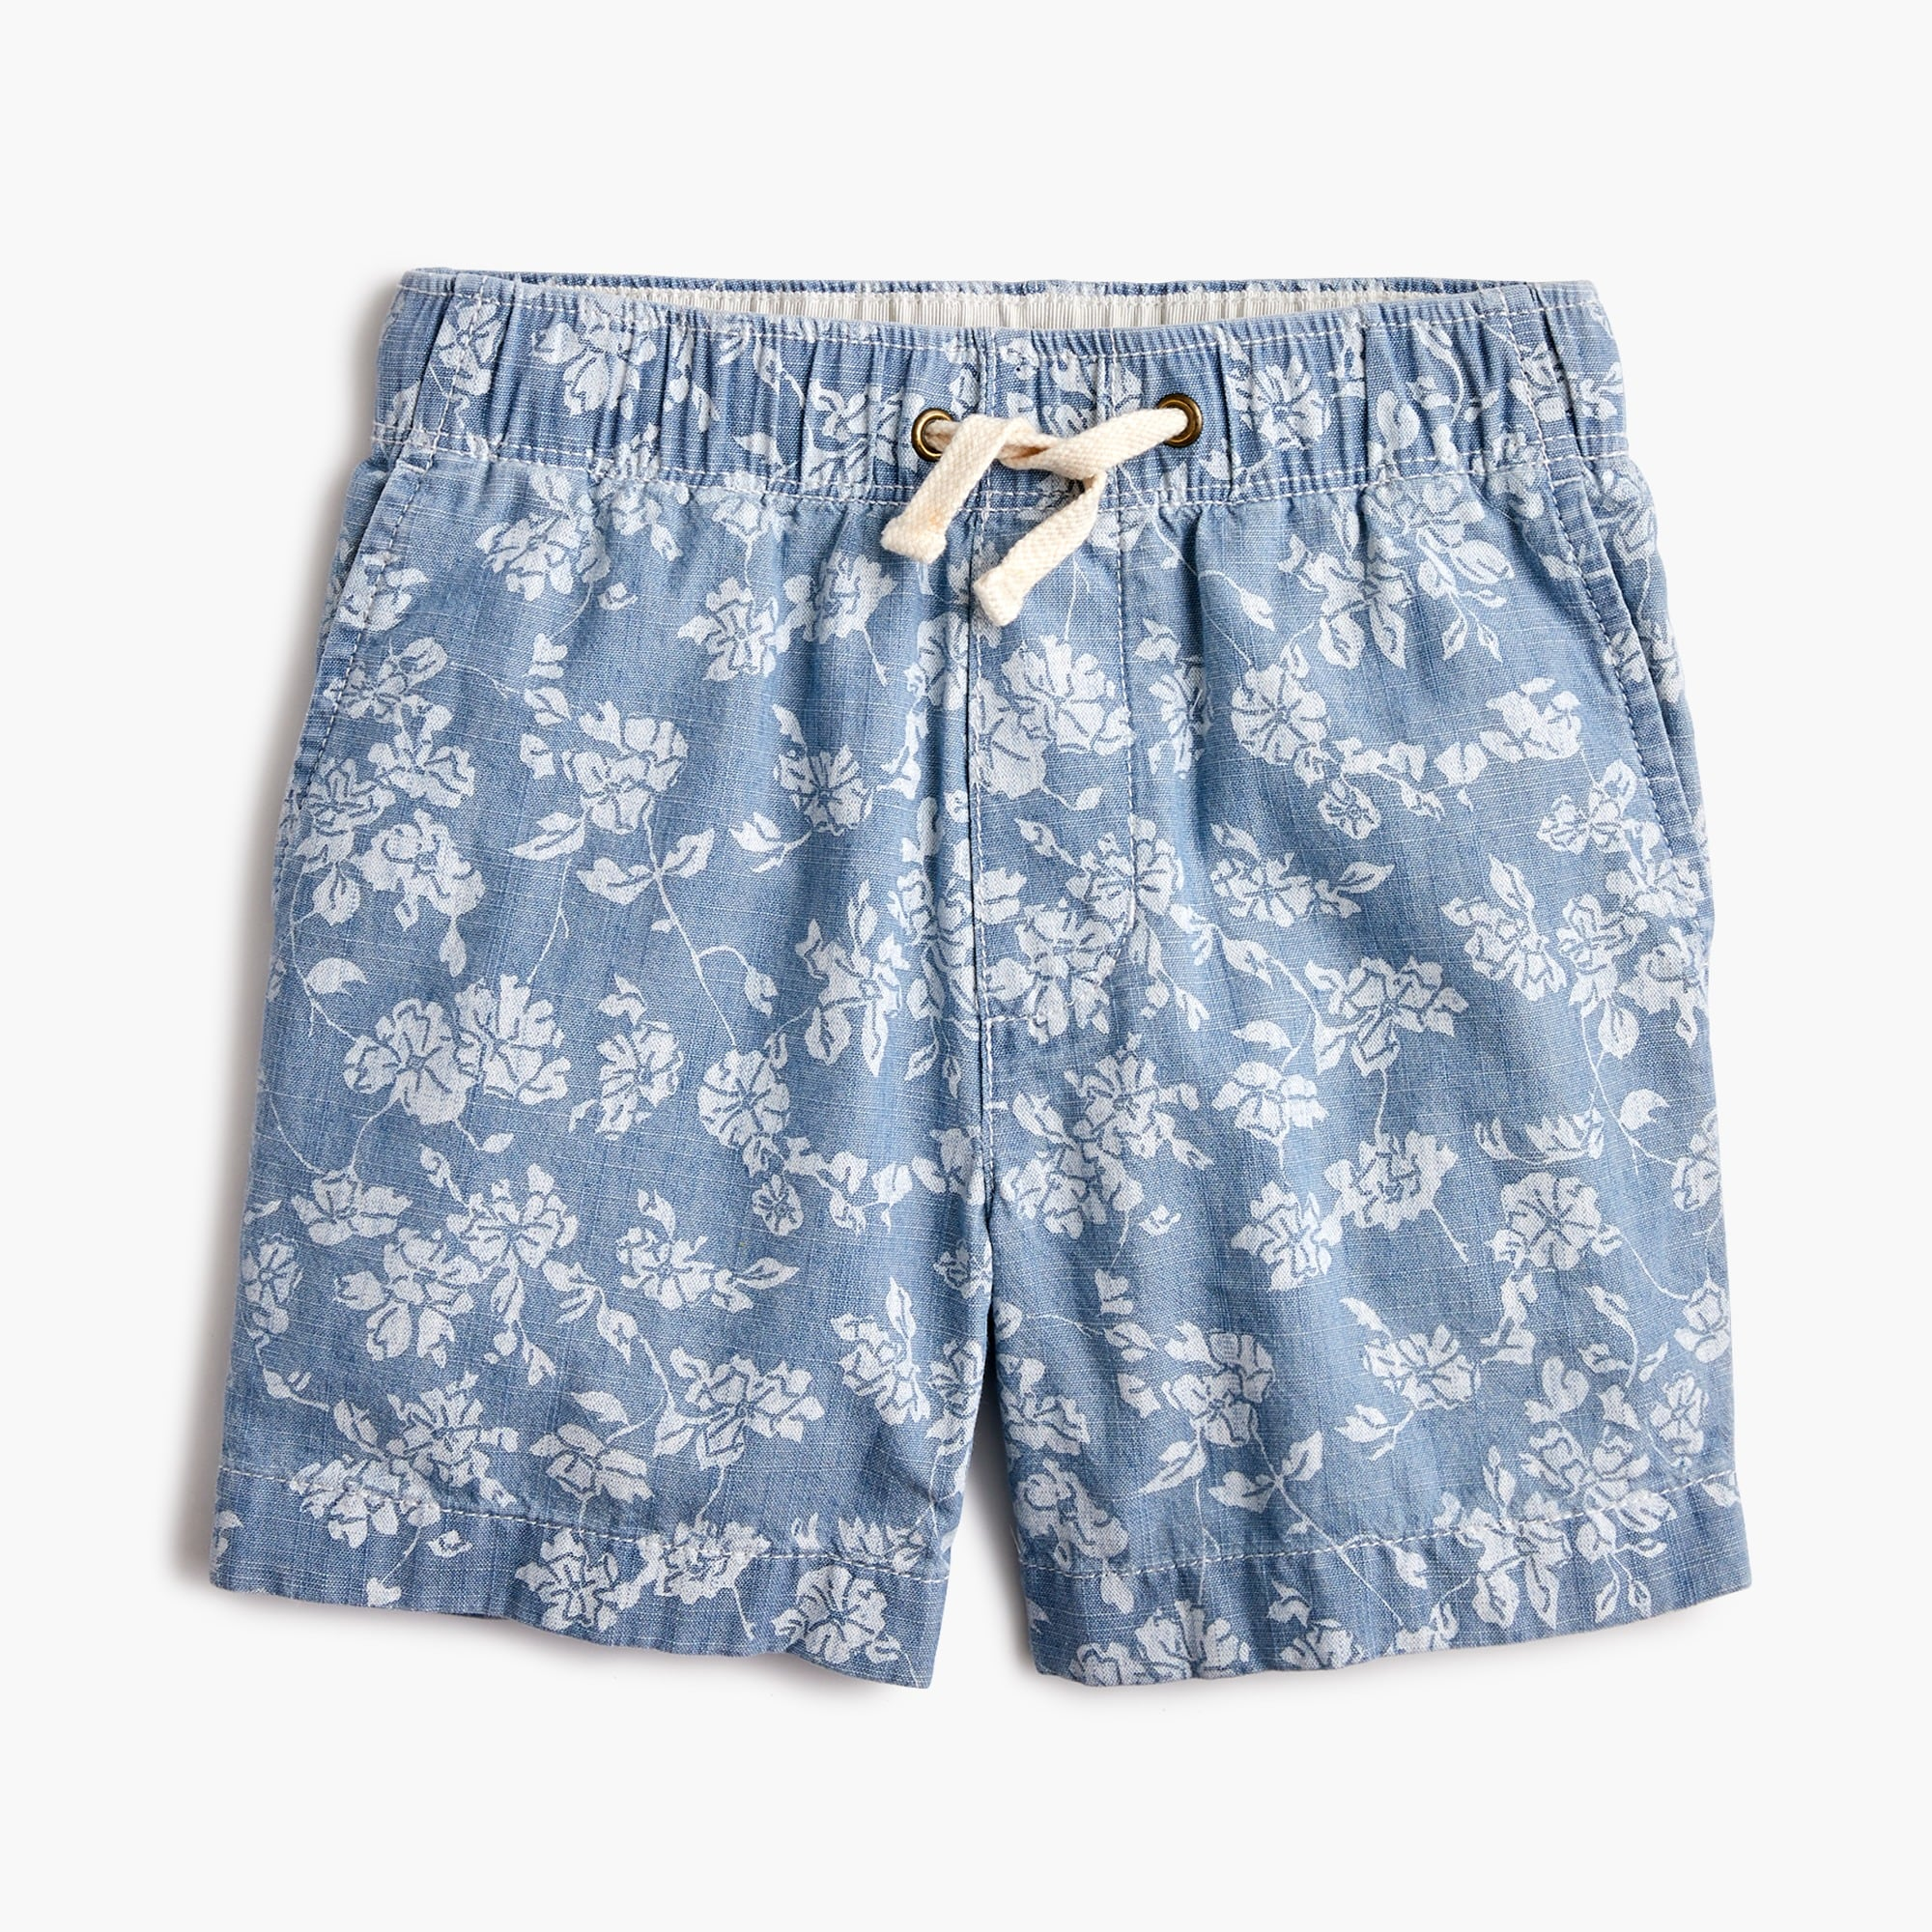 boys Boys' dock short in floral chambray